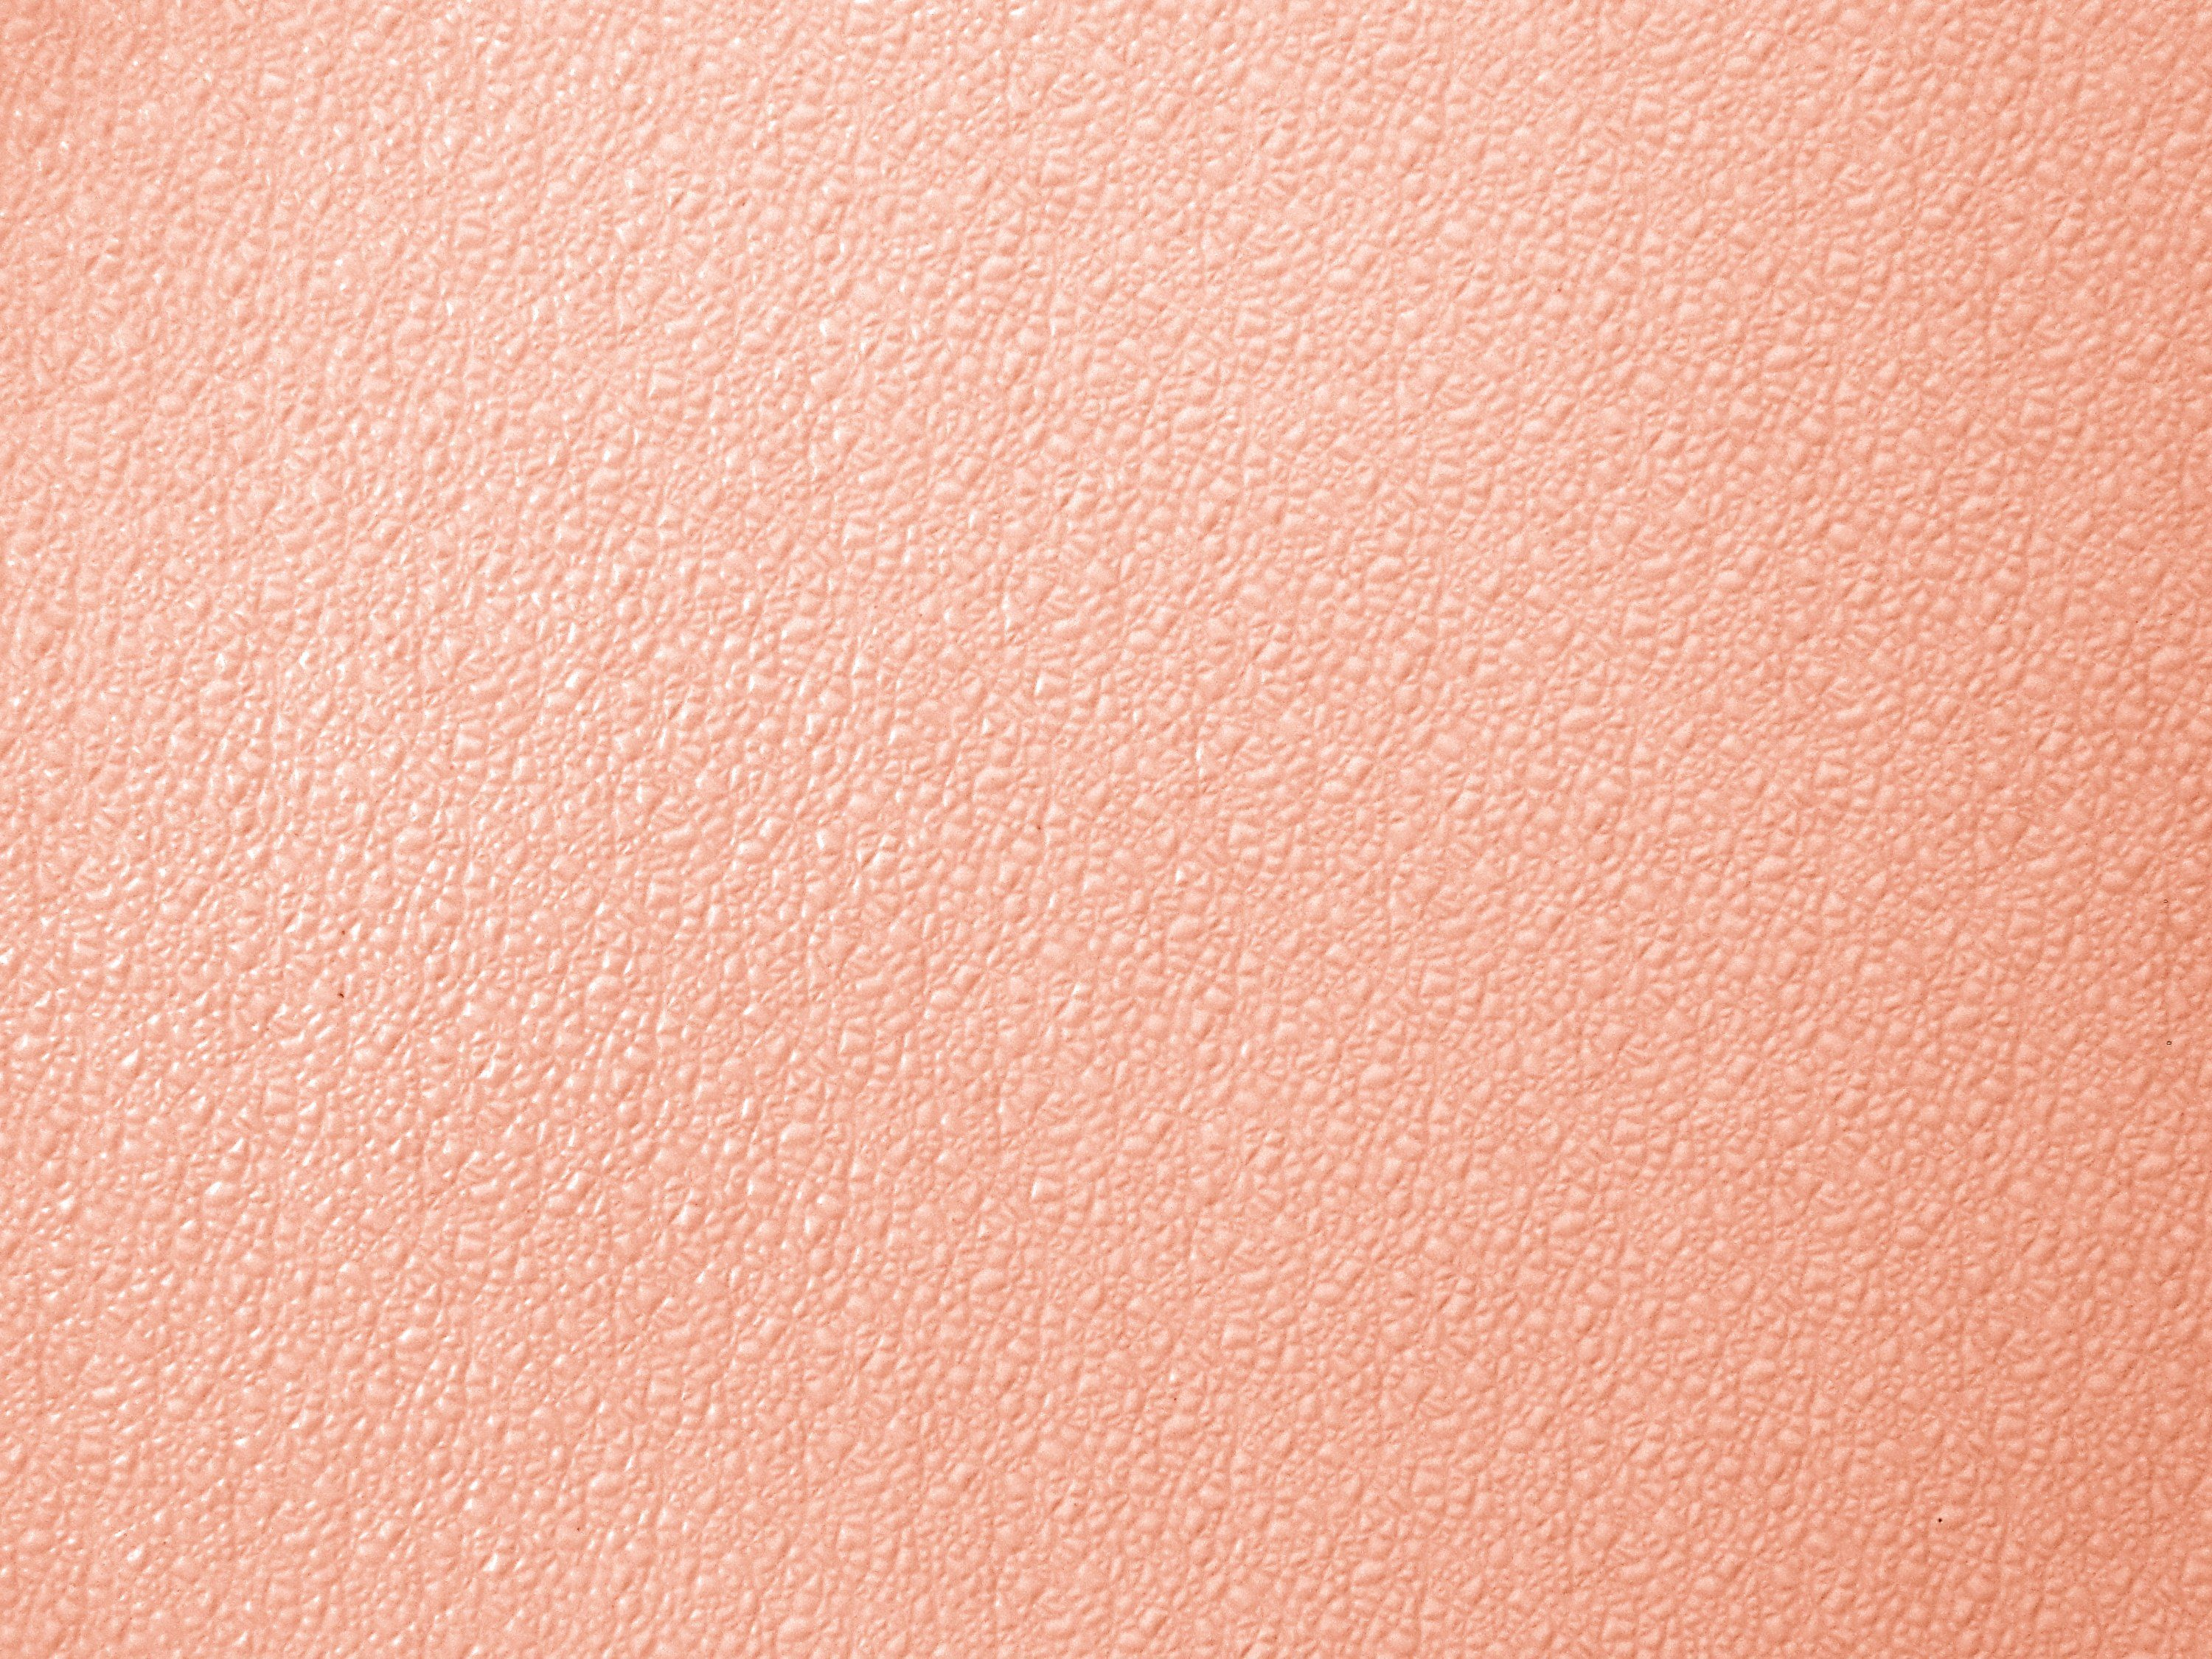 Peach Color Wallpapers Wallpaper Cave A collection of the top 52 color pastel aesthetic wallpapers and backgrounds available for download for free. peach color wallpapers wallpaper cave